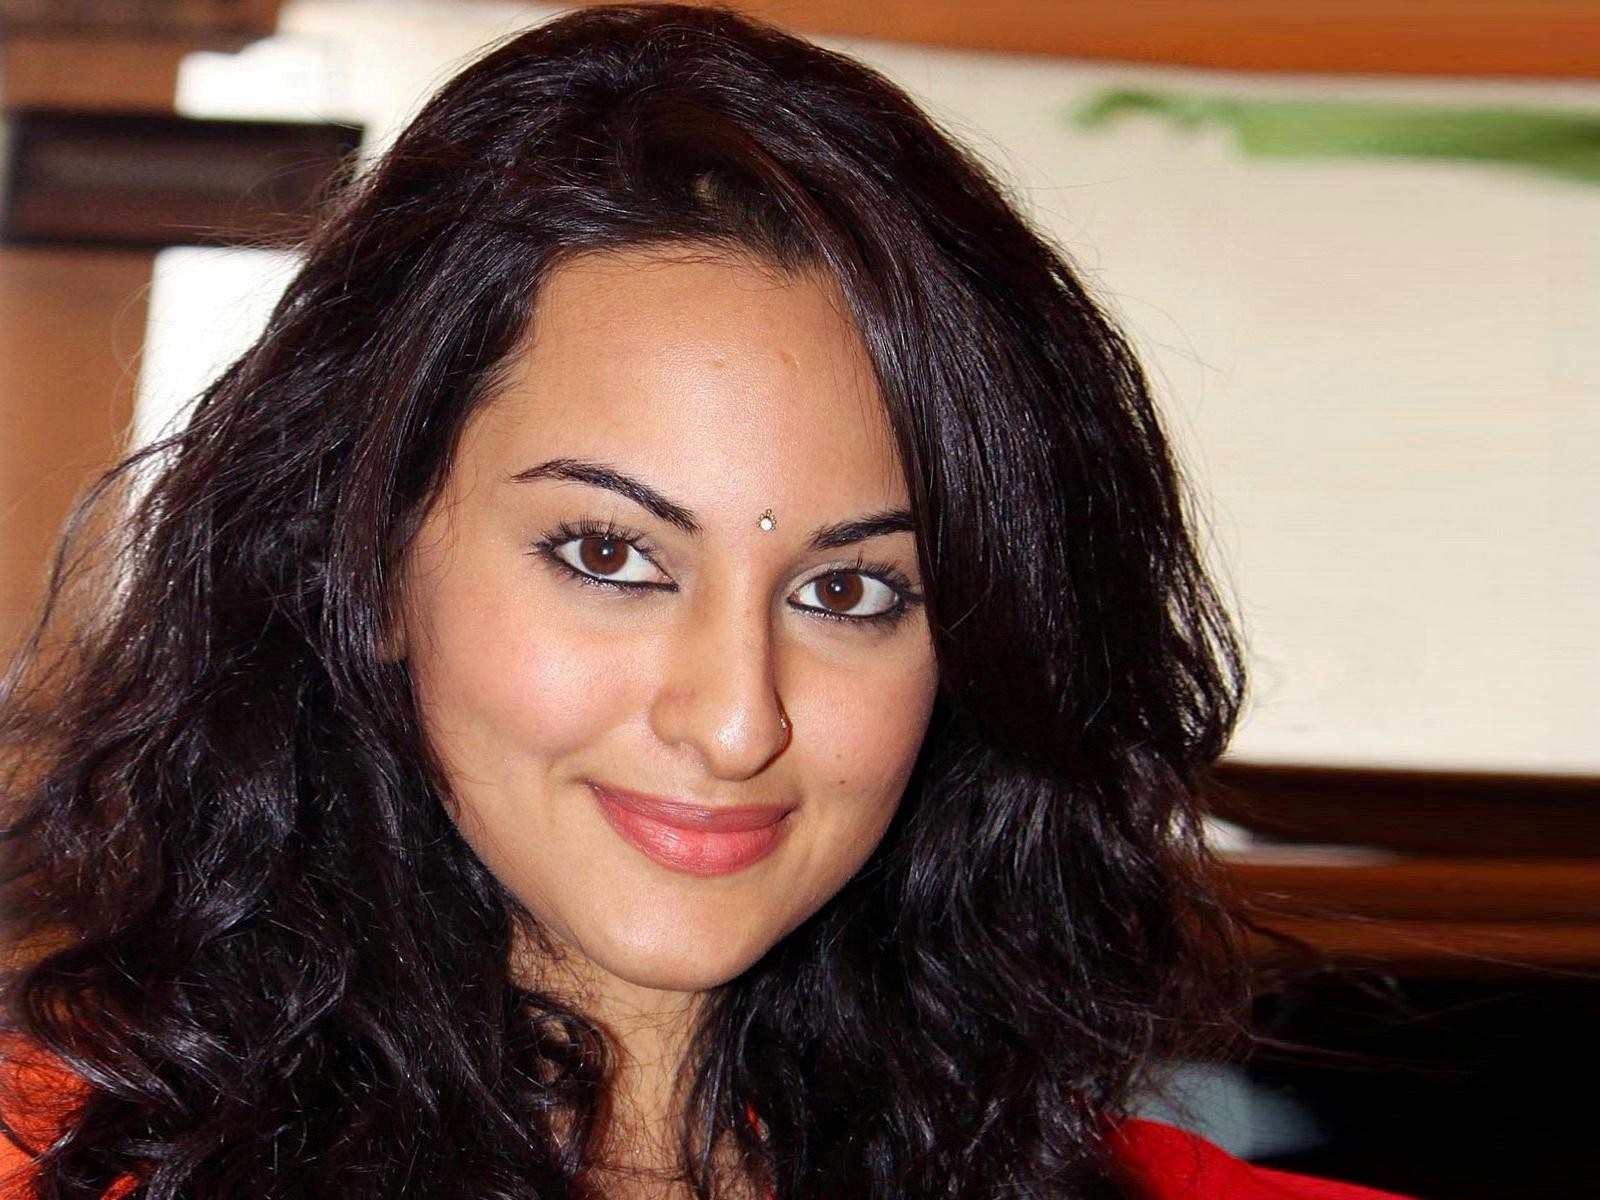 sonakshi sinha face wallpaper pictures 53452